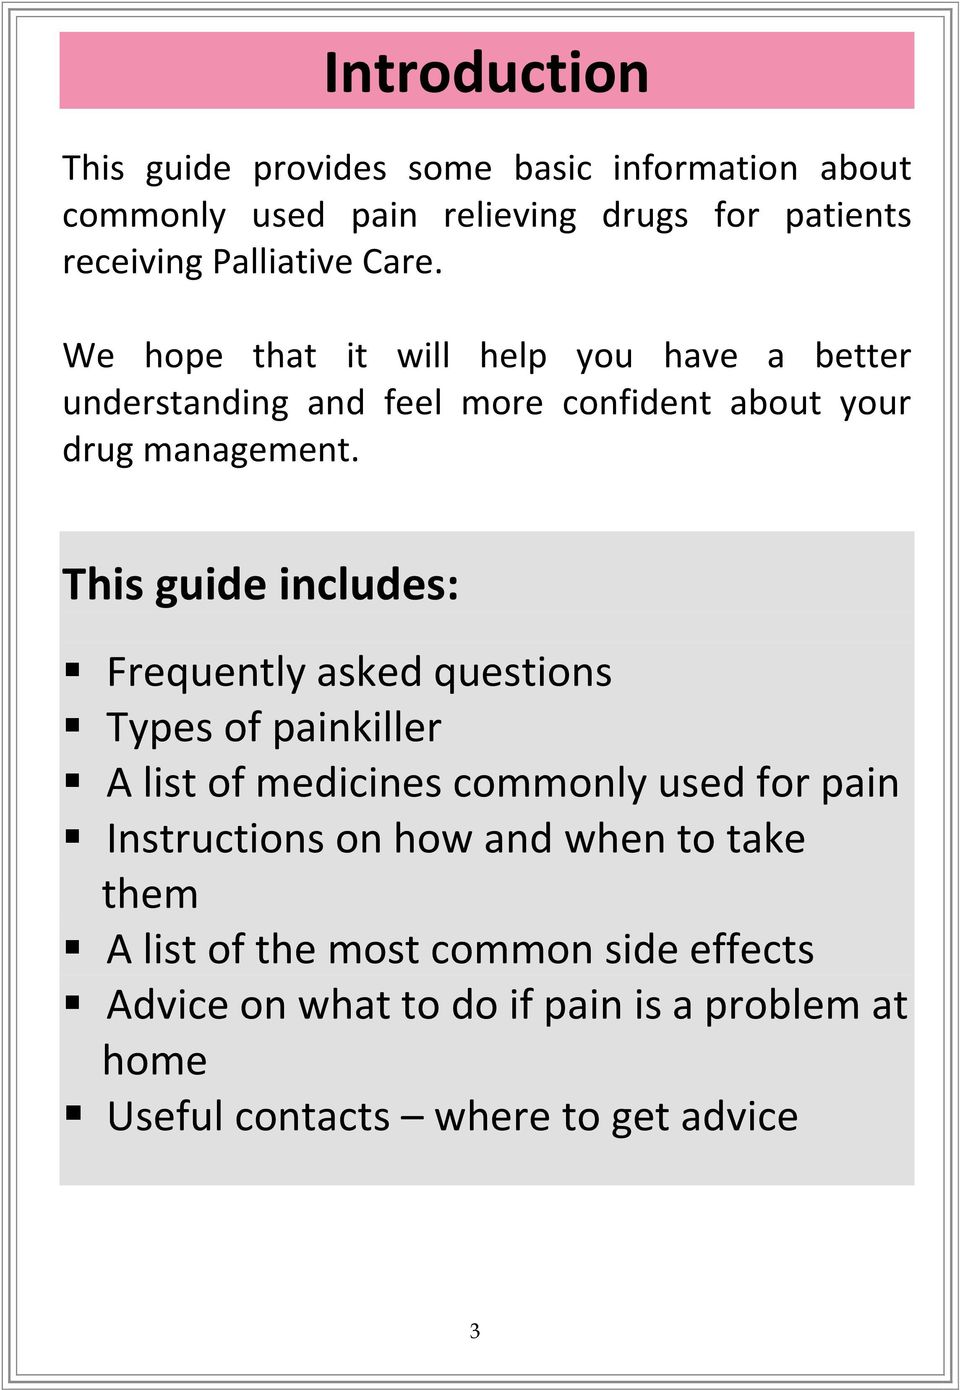 This guide includes: Frequently asked questions Types of painkiller A list of medicines commonly used for pain Instructions on how